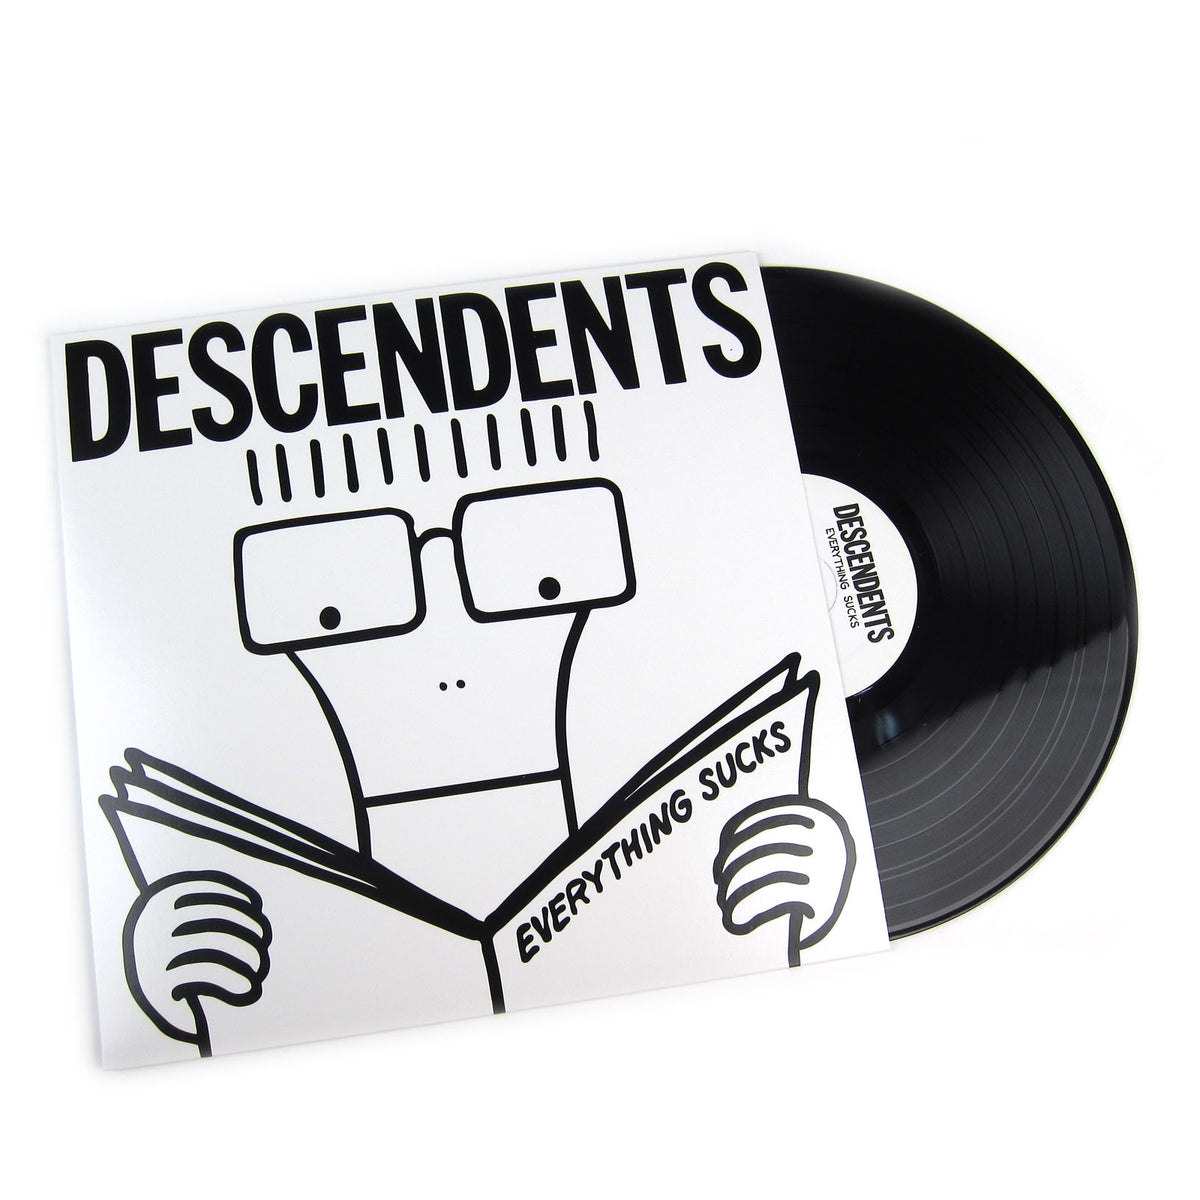 Descendents: Everything Sucks (Purple Vinyl) Vinyl LP